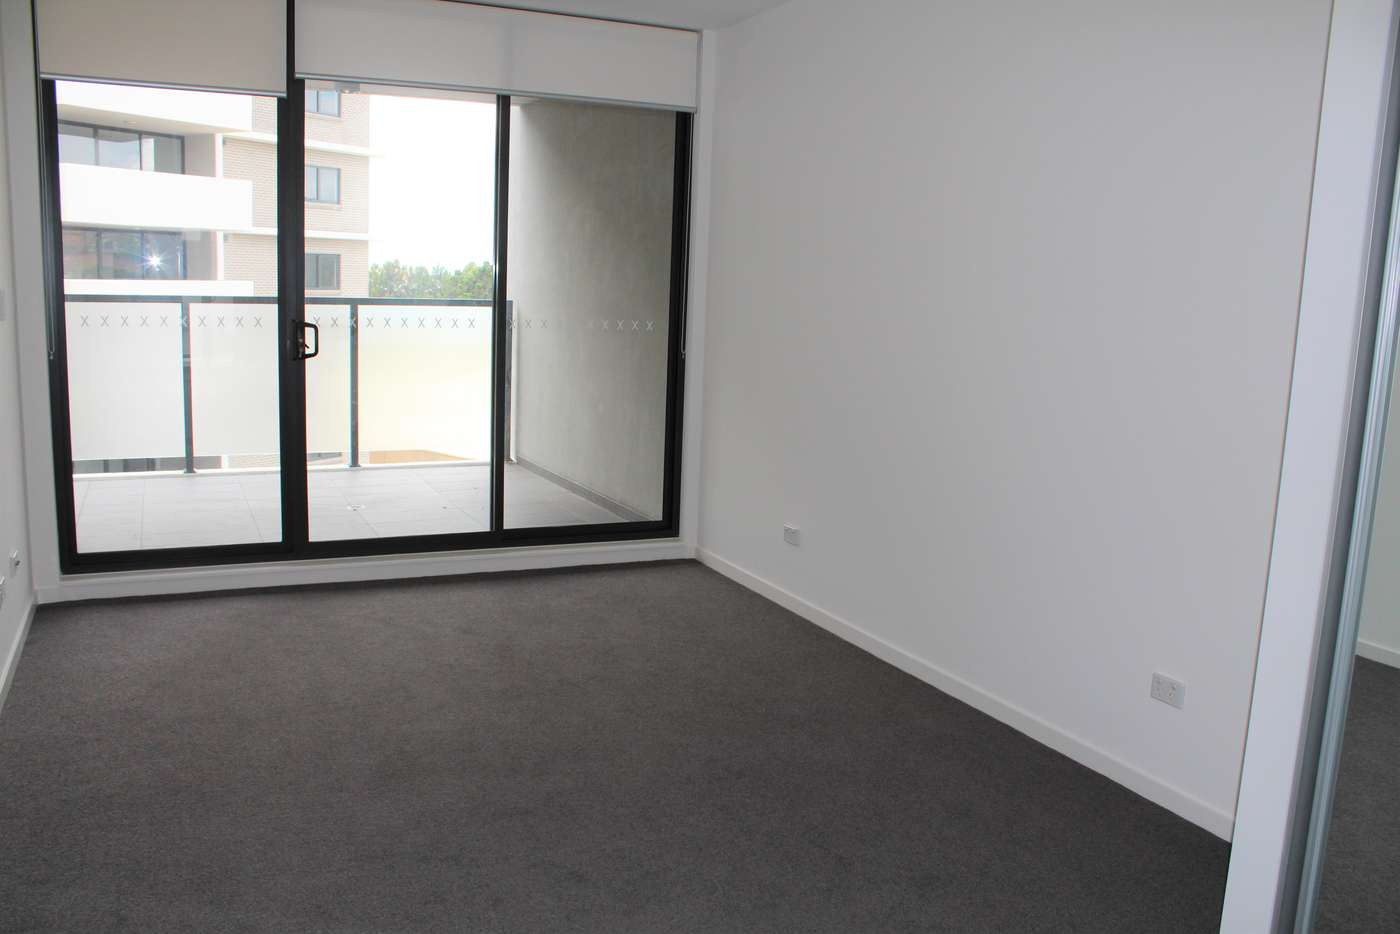 Sixth view of Homely apartment listing, 53/45 Bonar Street, Arncliffe NSW 2205